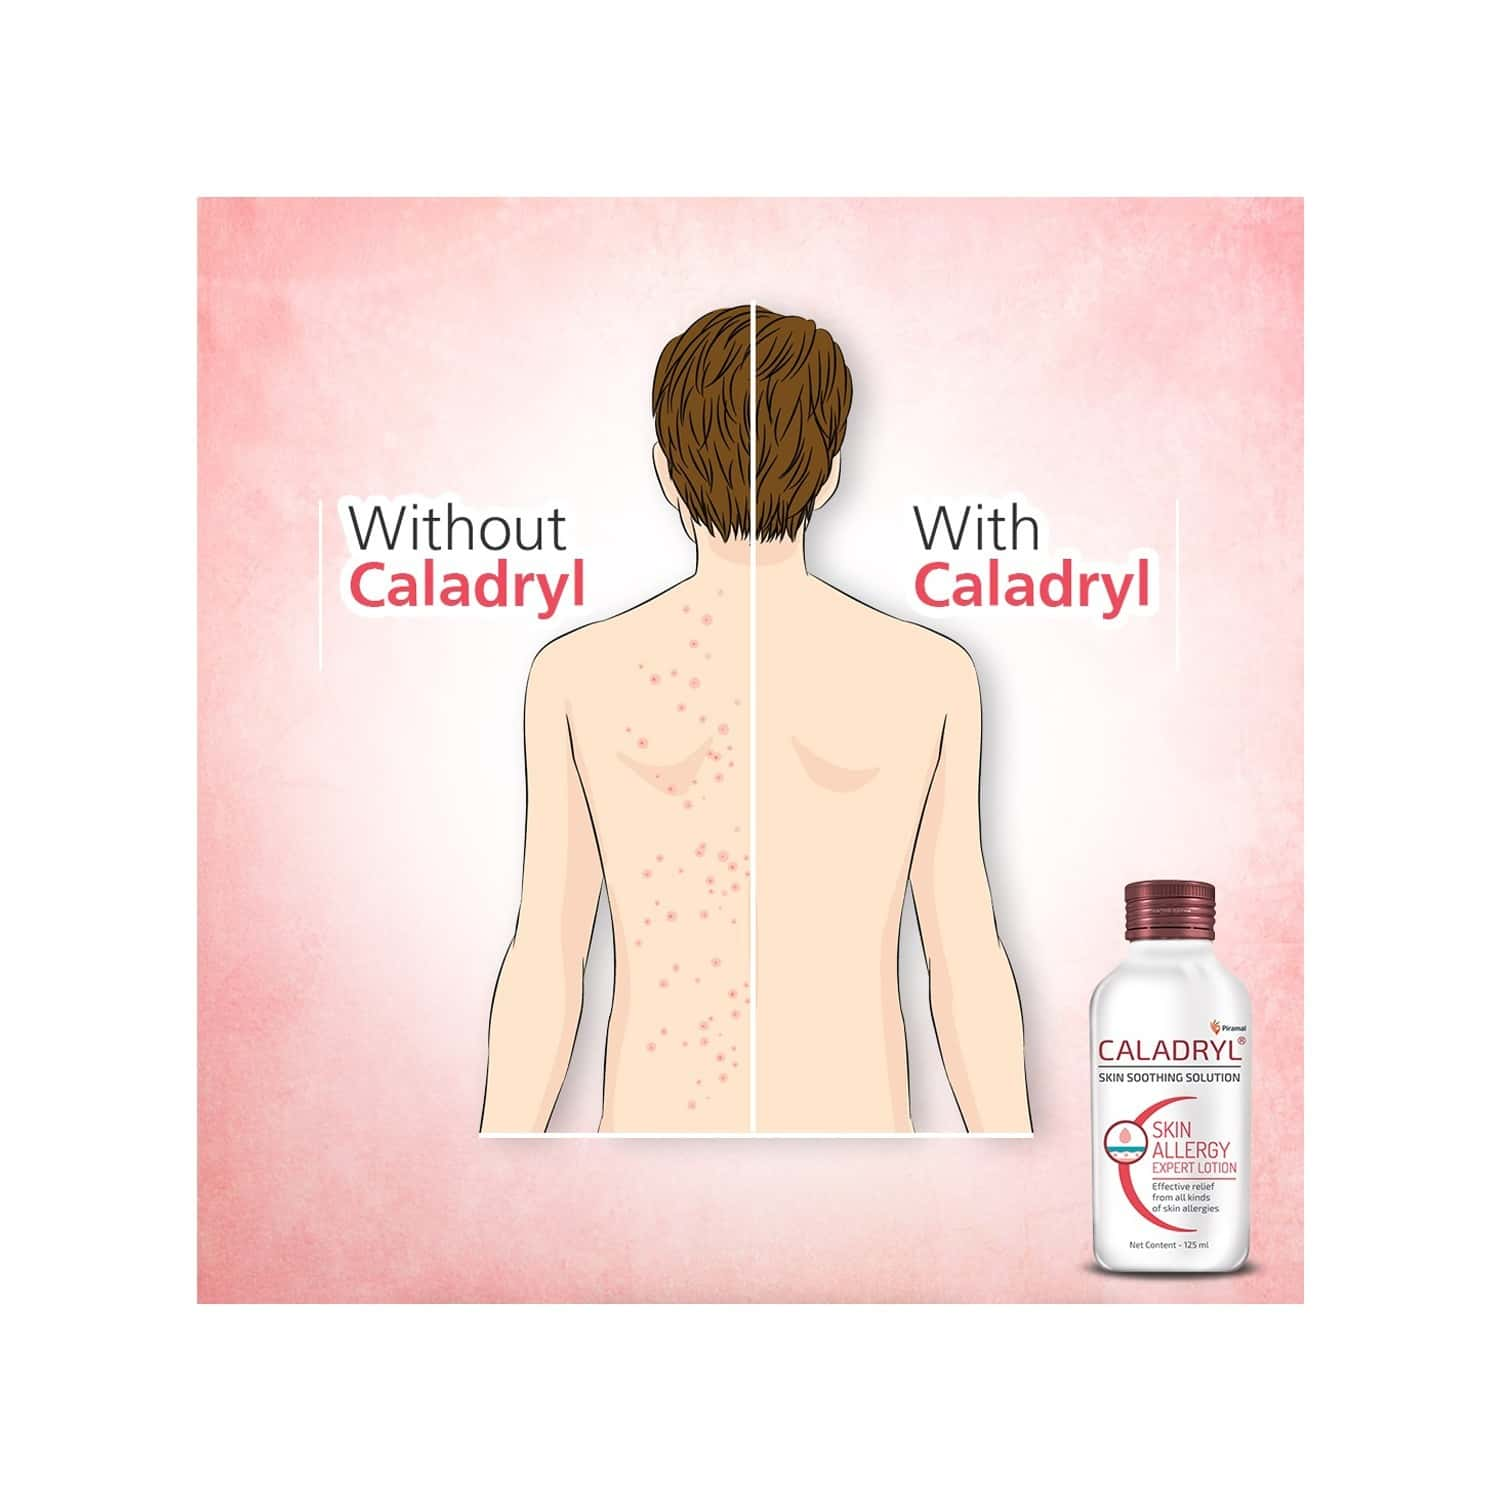 Caladryl Skin Allergy Lotion For All Skin Types - 65ml